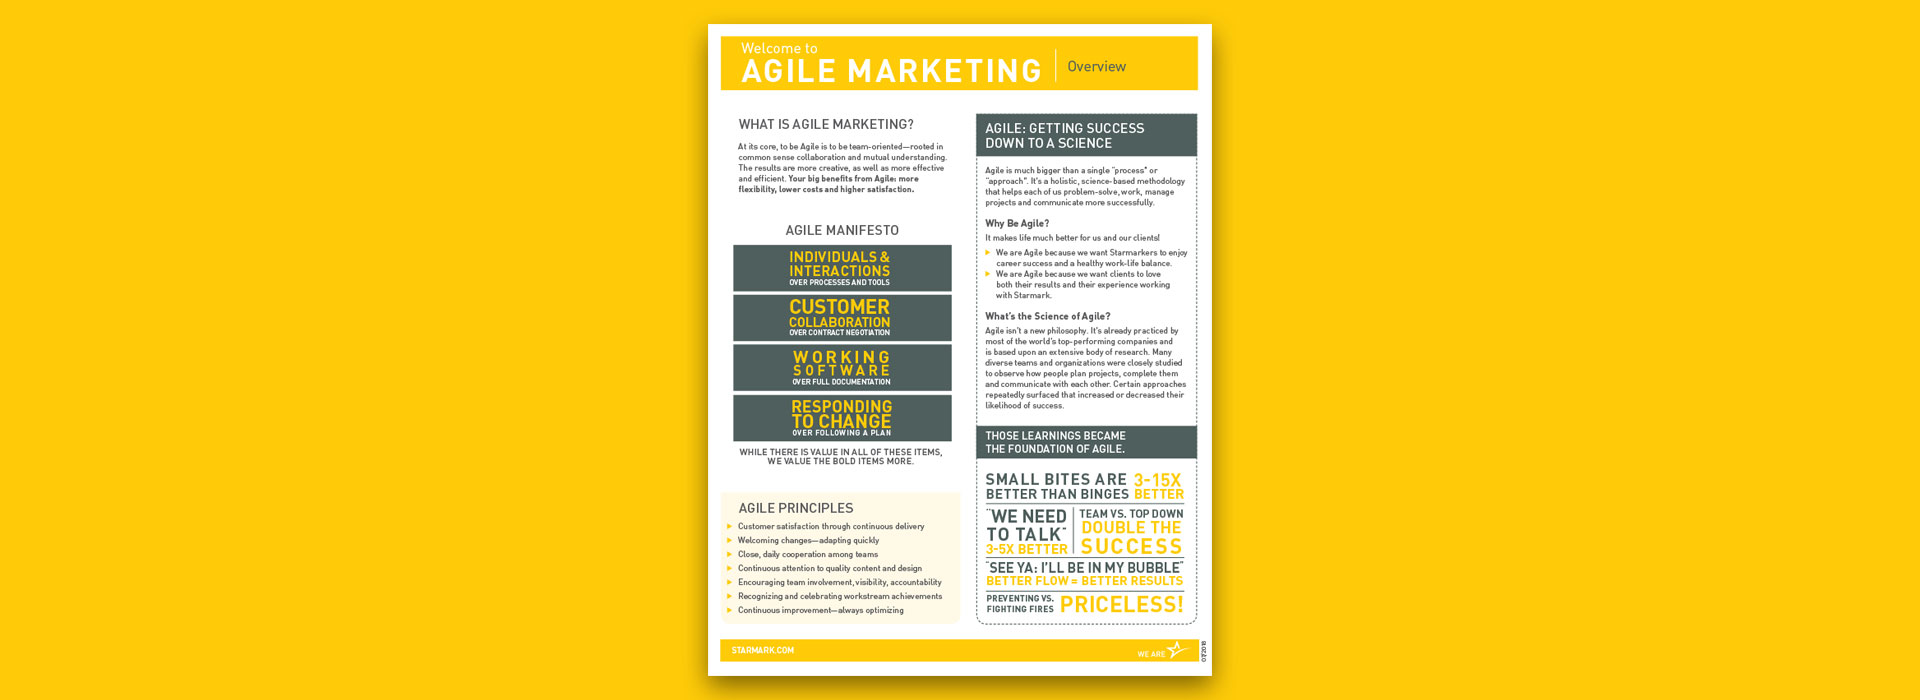 Agile Marketing Cheat Sheet Overview at Starmark International